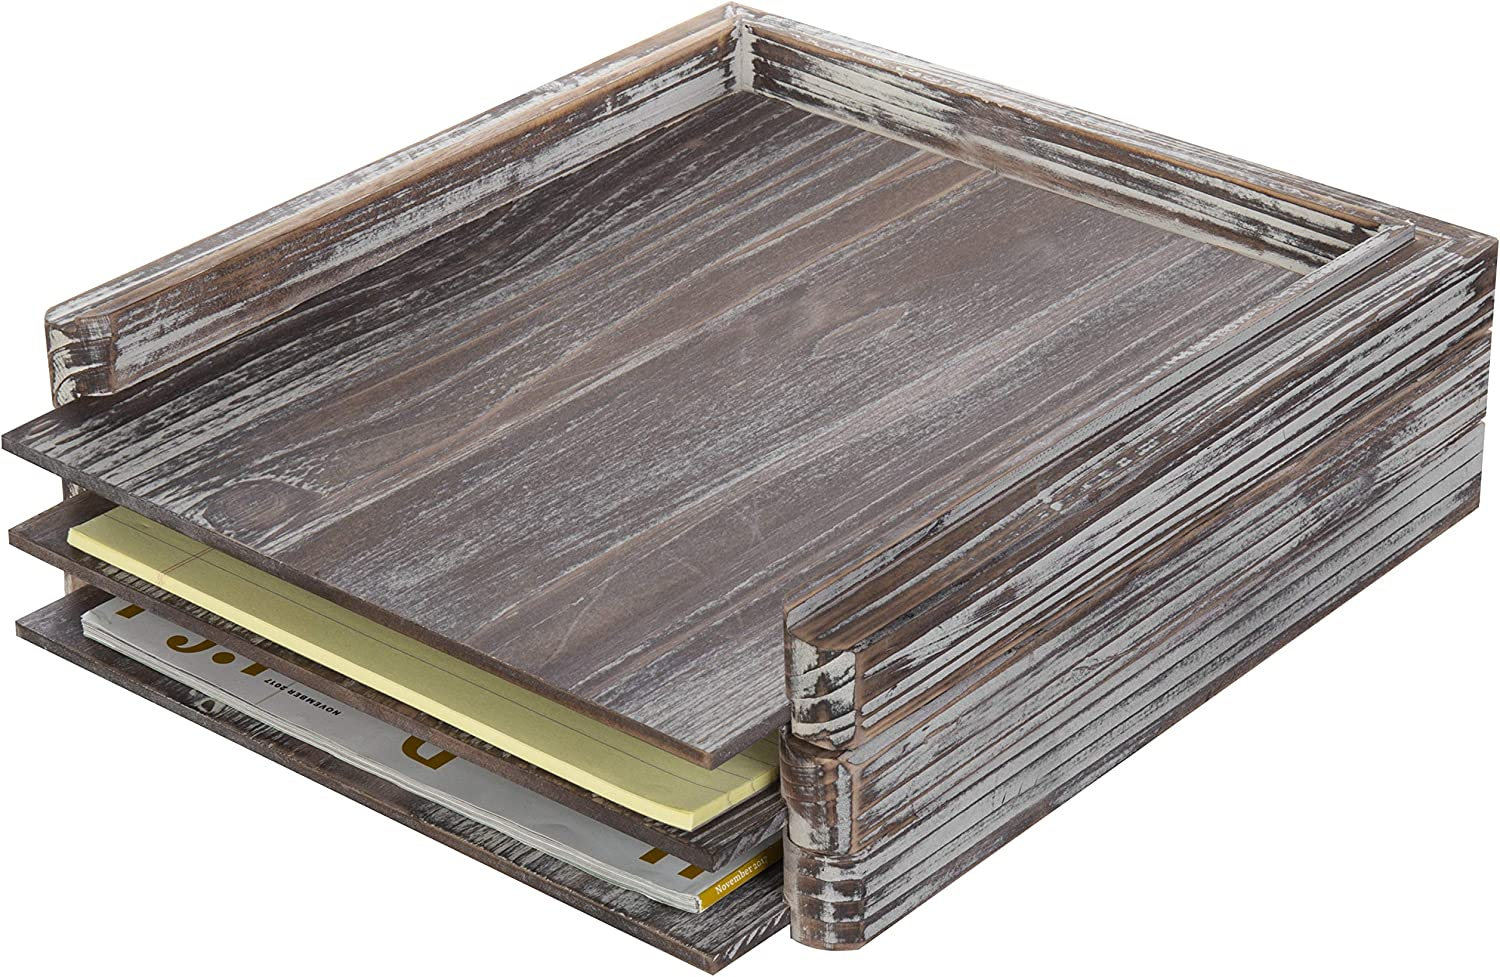 MyGift Rustic Torched Wood Desktop Stackable Document Tray Organizer, Set of 3